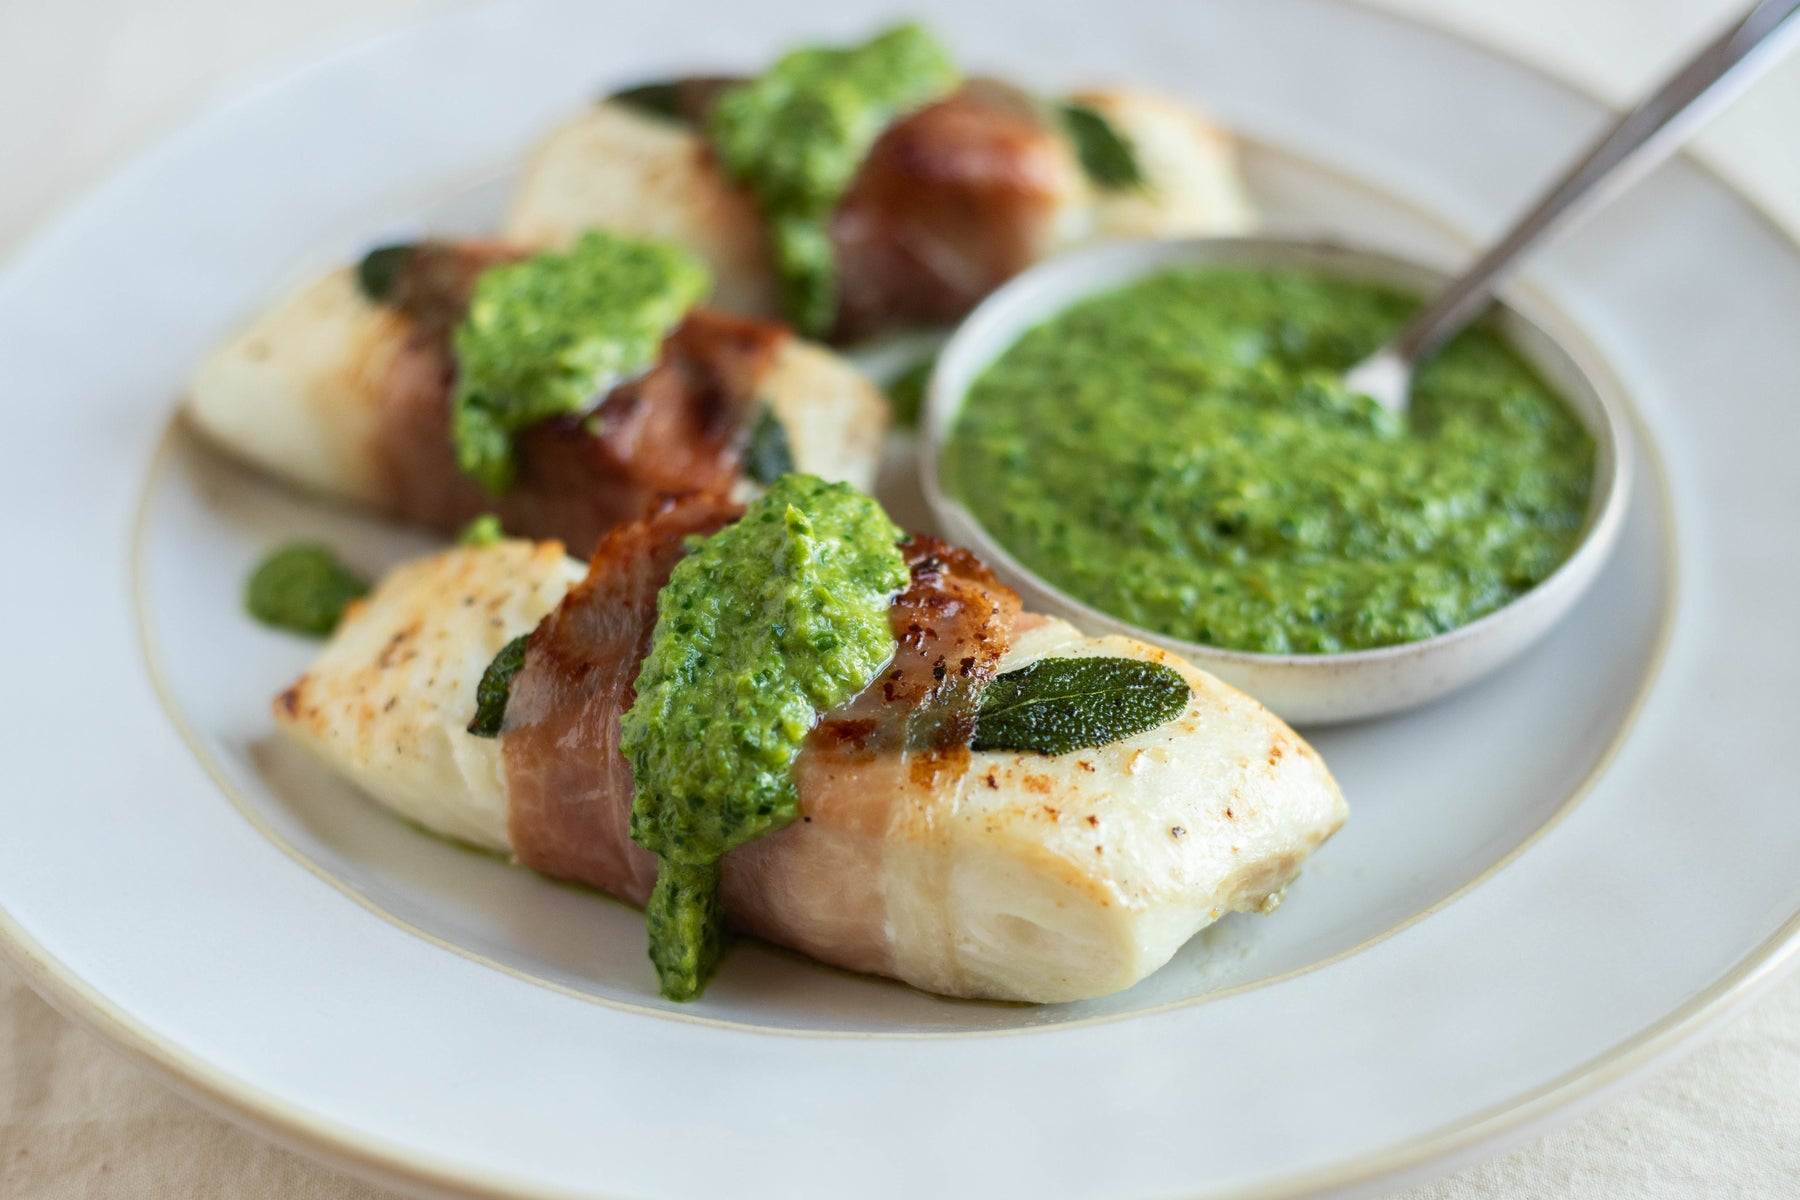 Captain Stu's Halibut with Asparagus Sauce Recipe